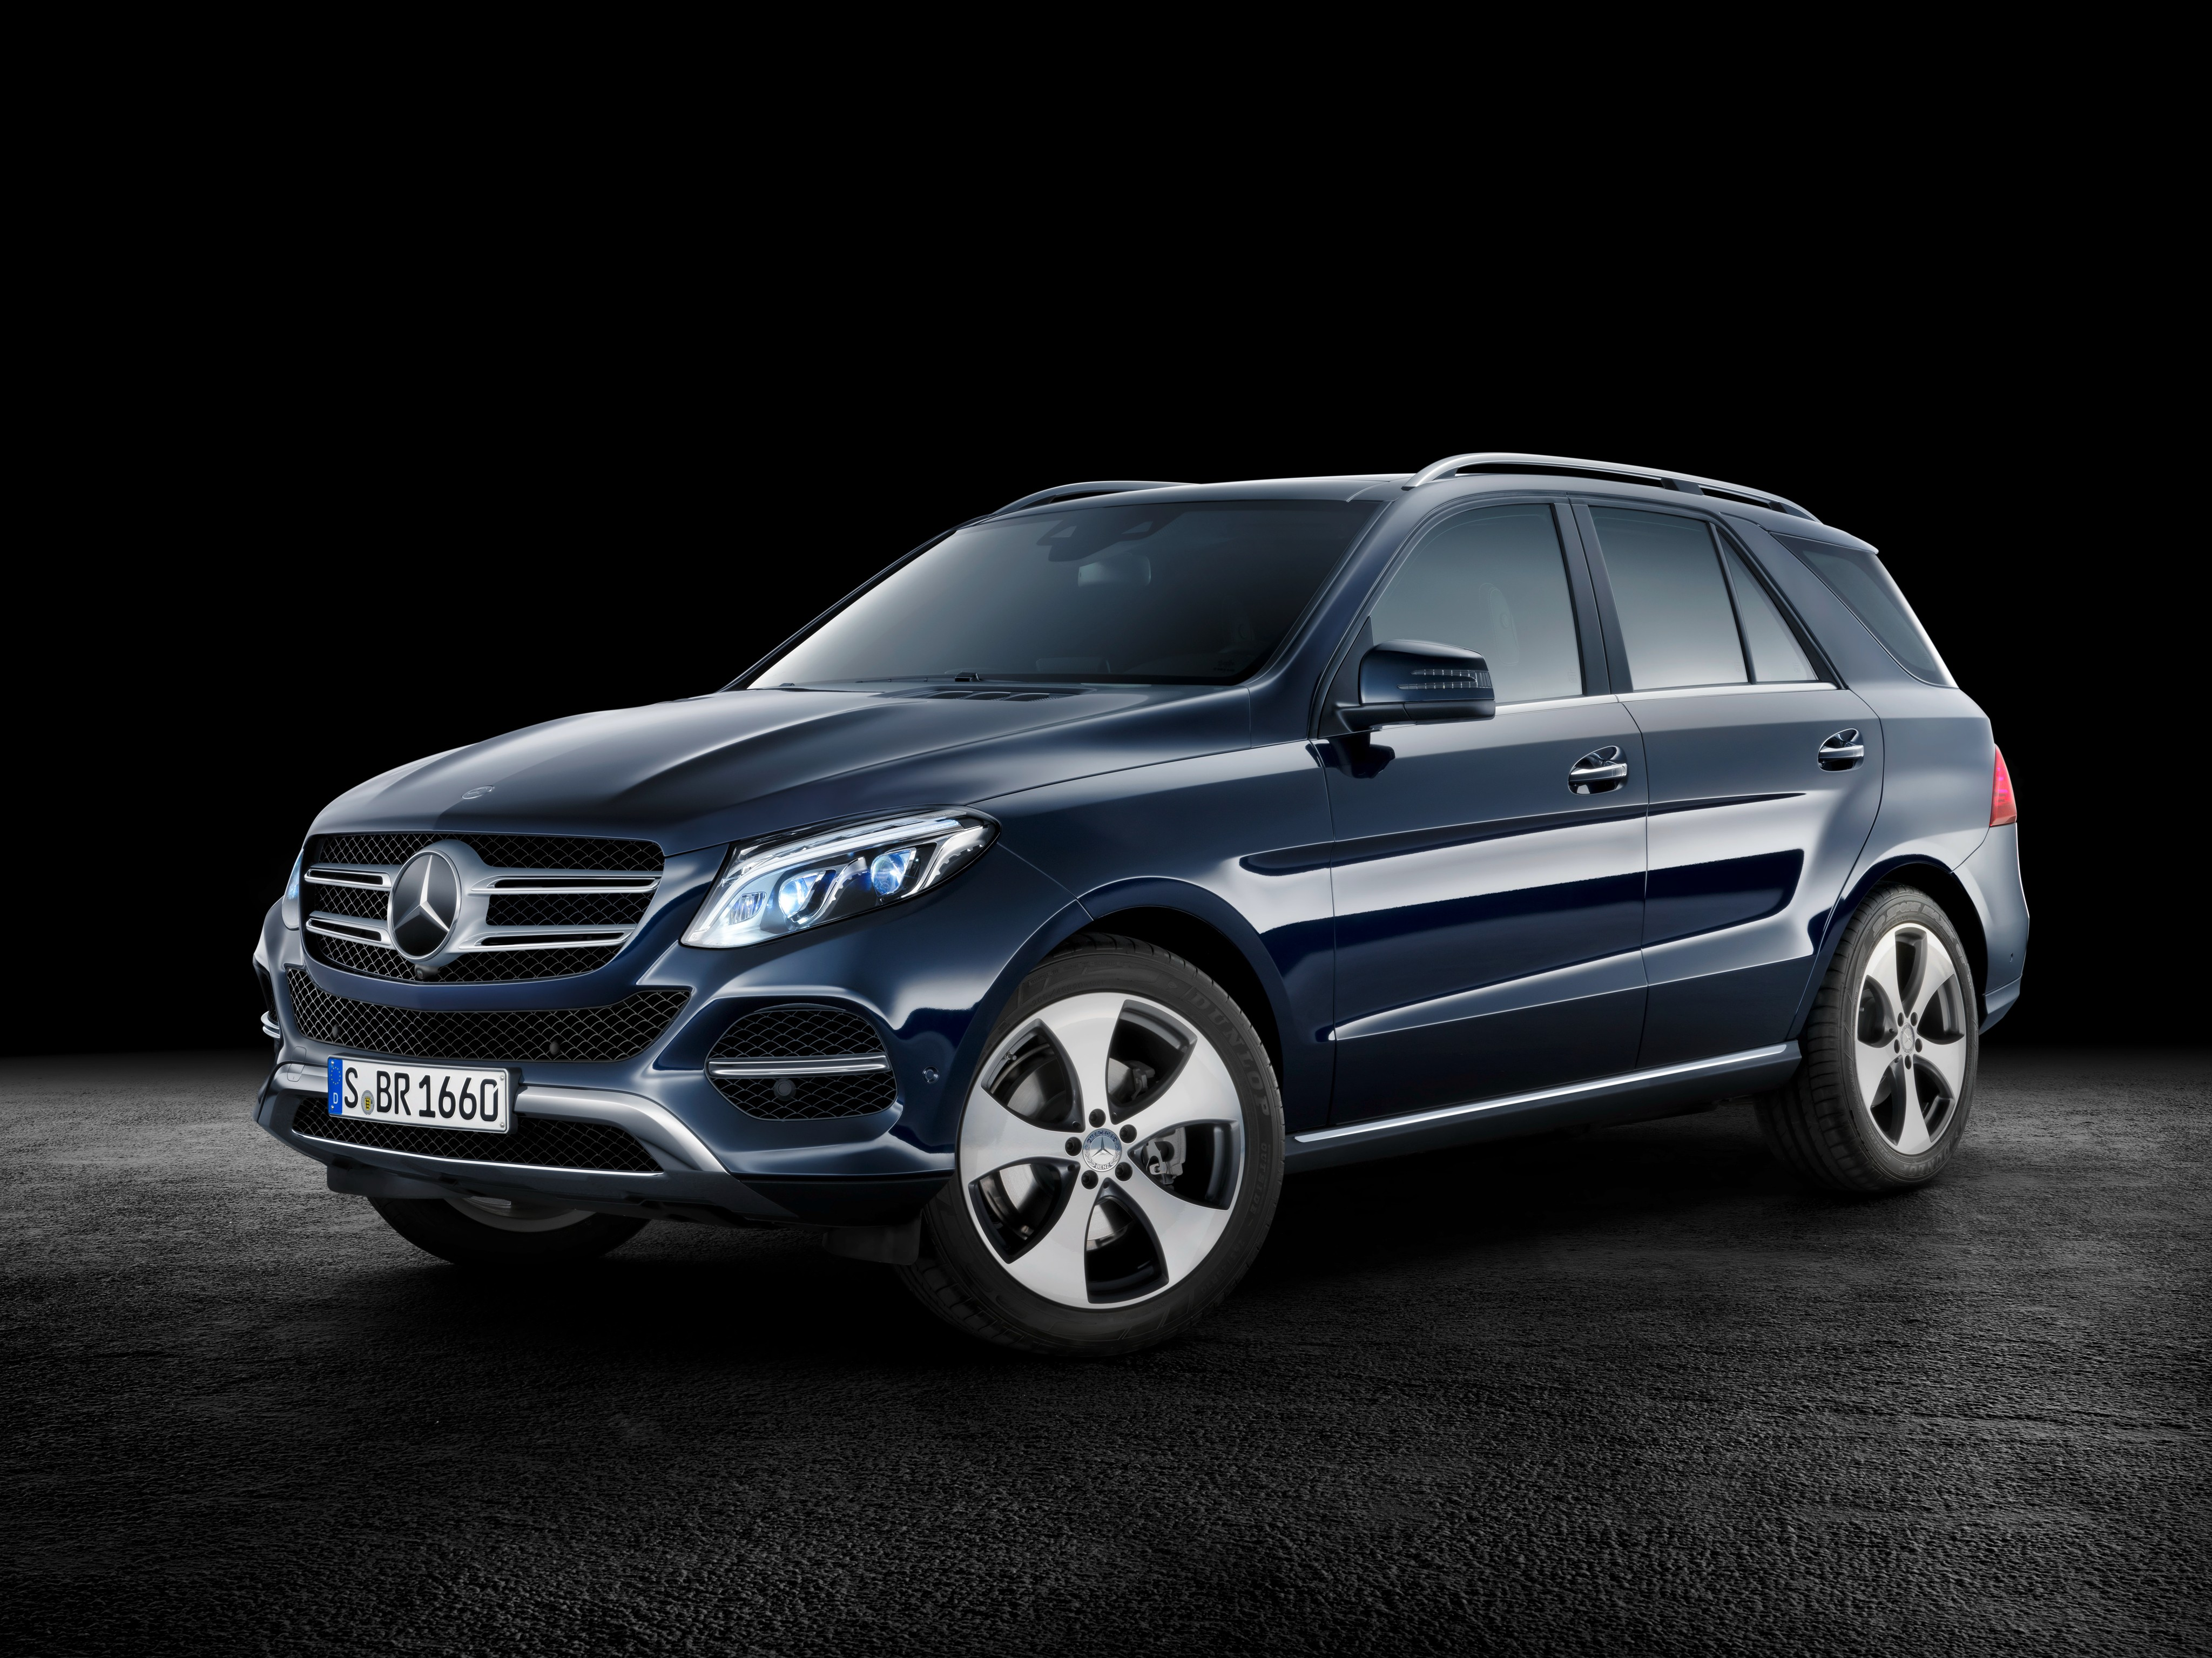 mercedes benz gle w166 specs 2015 2016 2017 2018. Black Bedroom Furniture Sets. Home Design Ideas